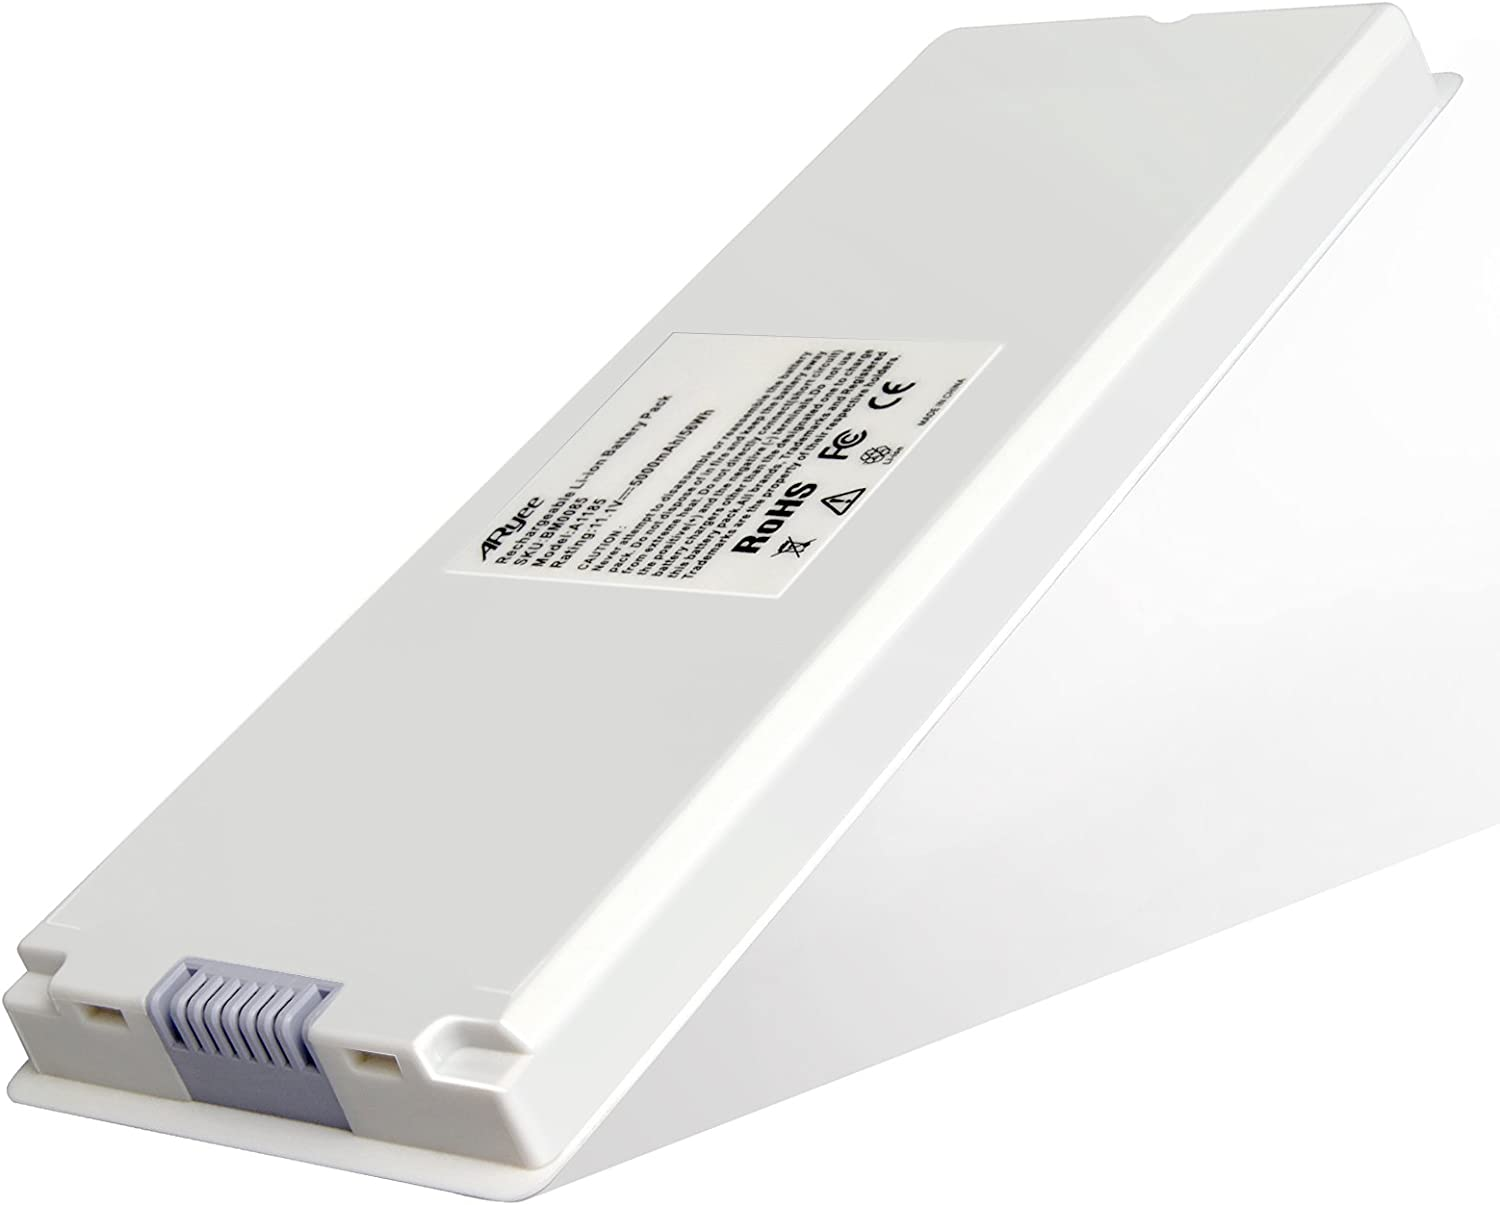 Laptop Battery Replacement for A1185 A1181 MacBook 13 inch Series MA254 MA255 MA699 MA700 MB061 MB062 MB402R White